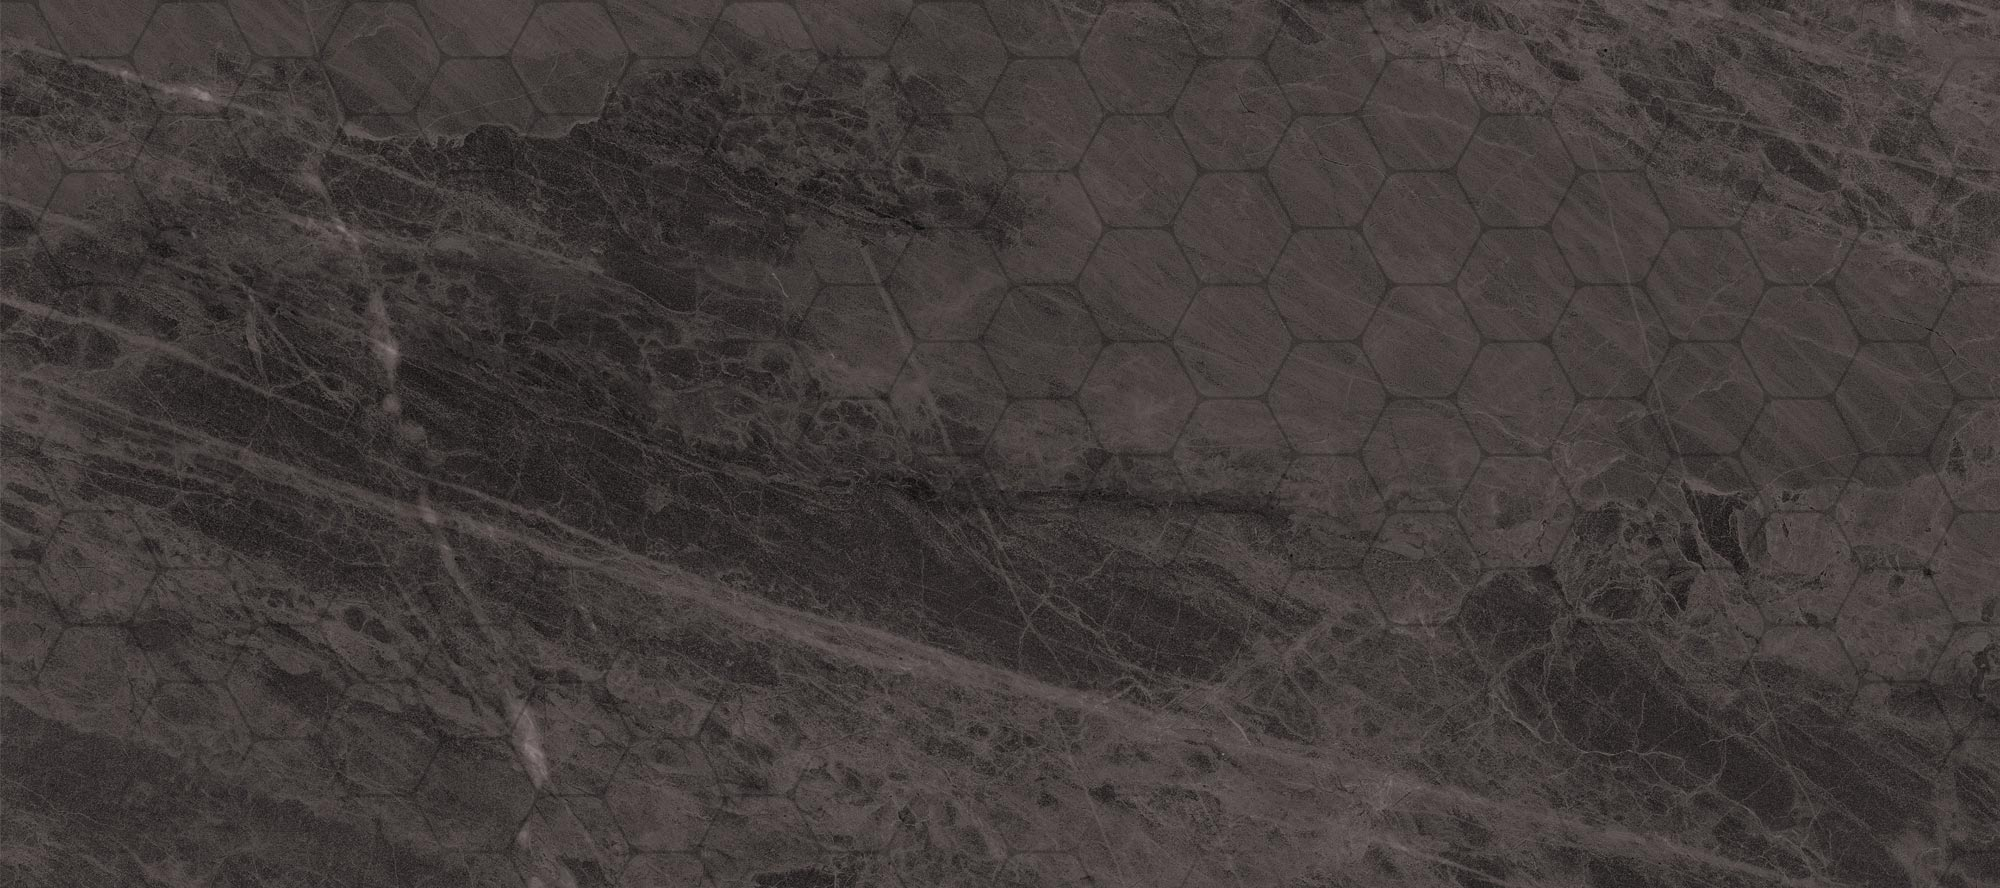 D'infinity, Stone Extravaganza Collection of Latest Laminate Designs-Sundek International